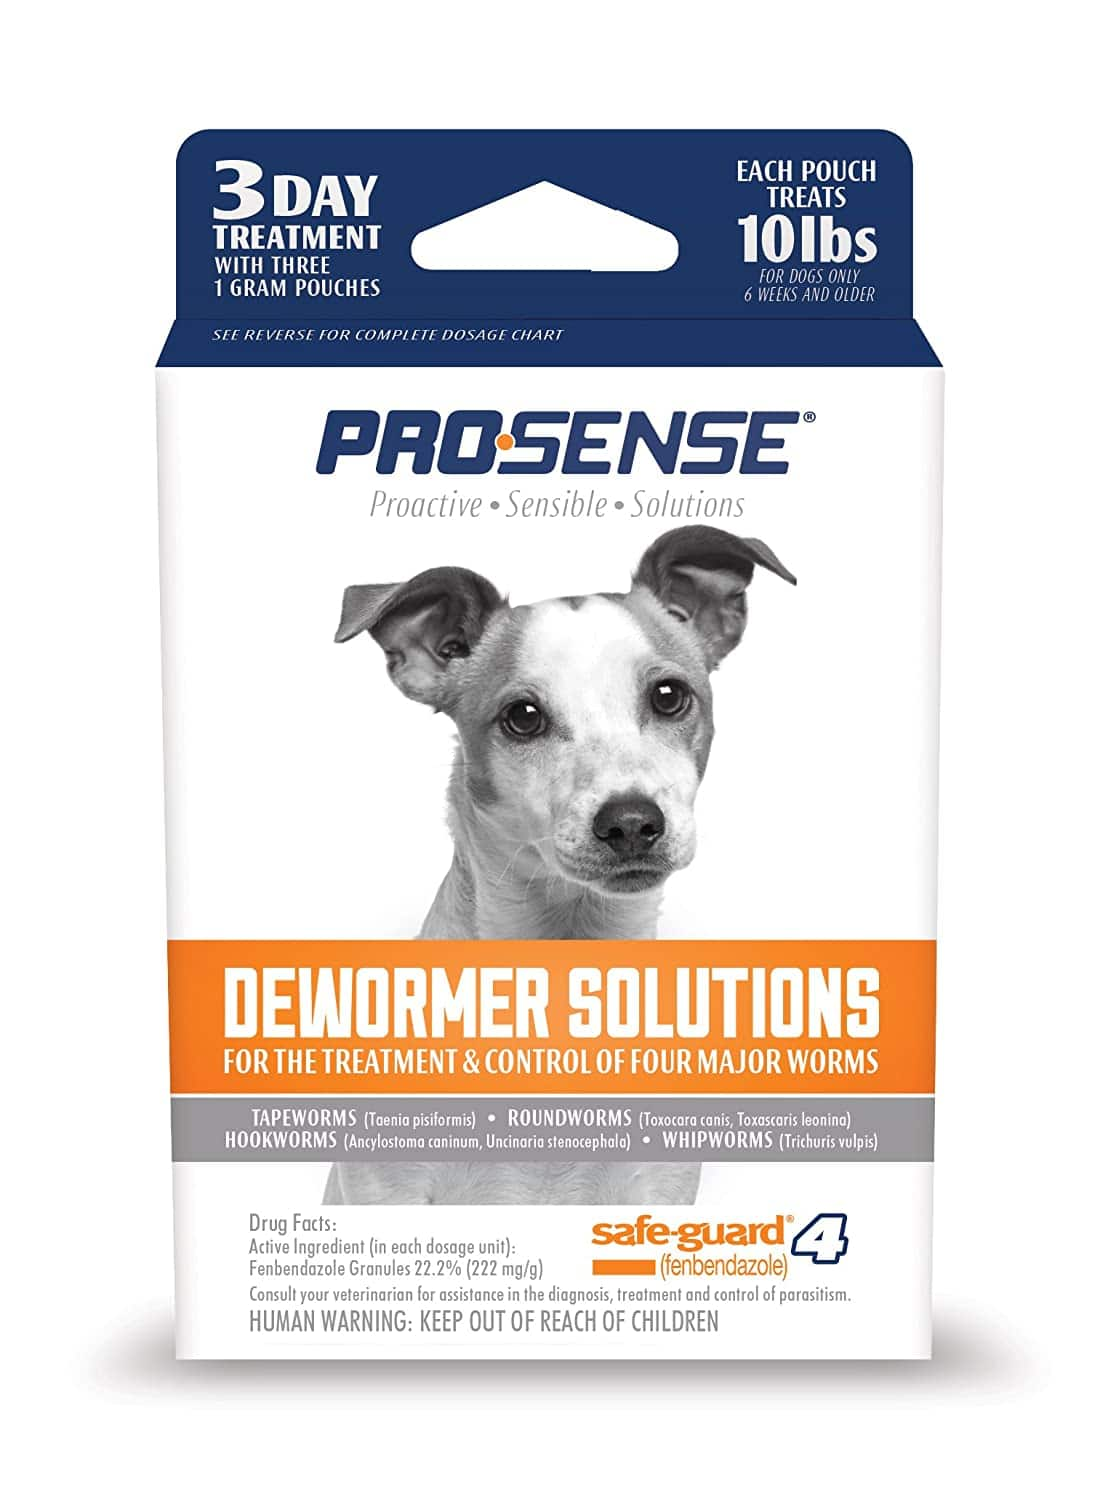 Pro-Sense Dog Dewormer Solutions: for 40lb Dogs $4, for 10lb Dogs $2 + Free Prime Shipping